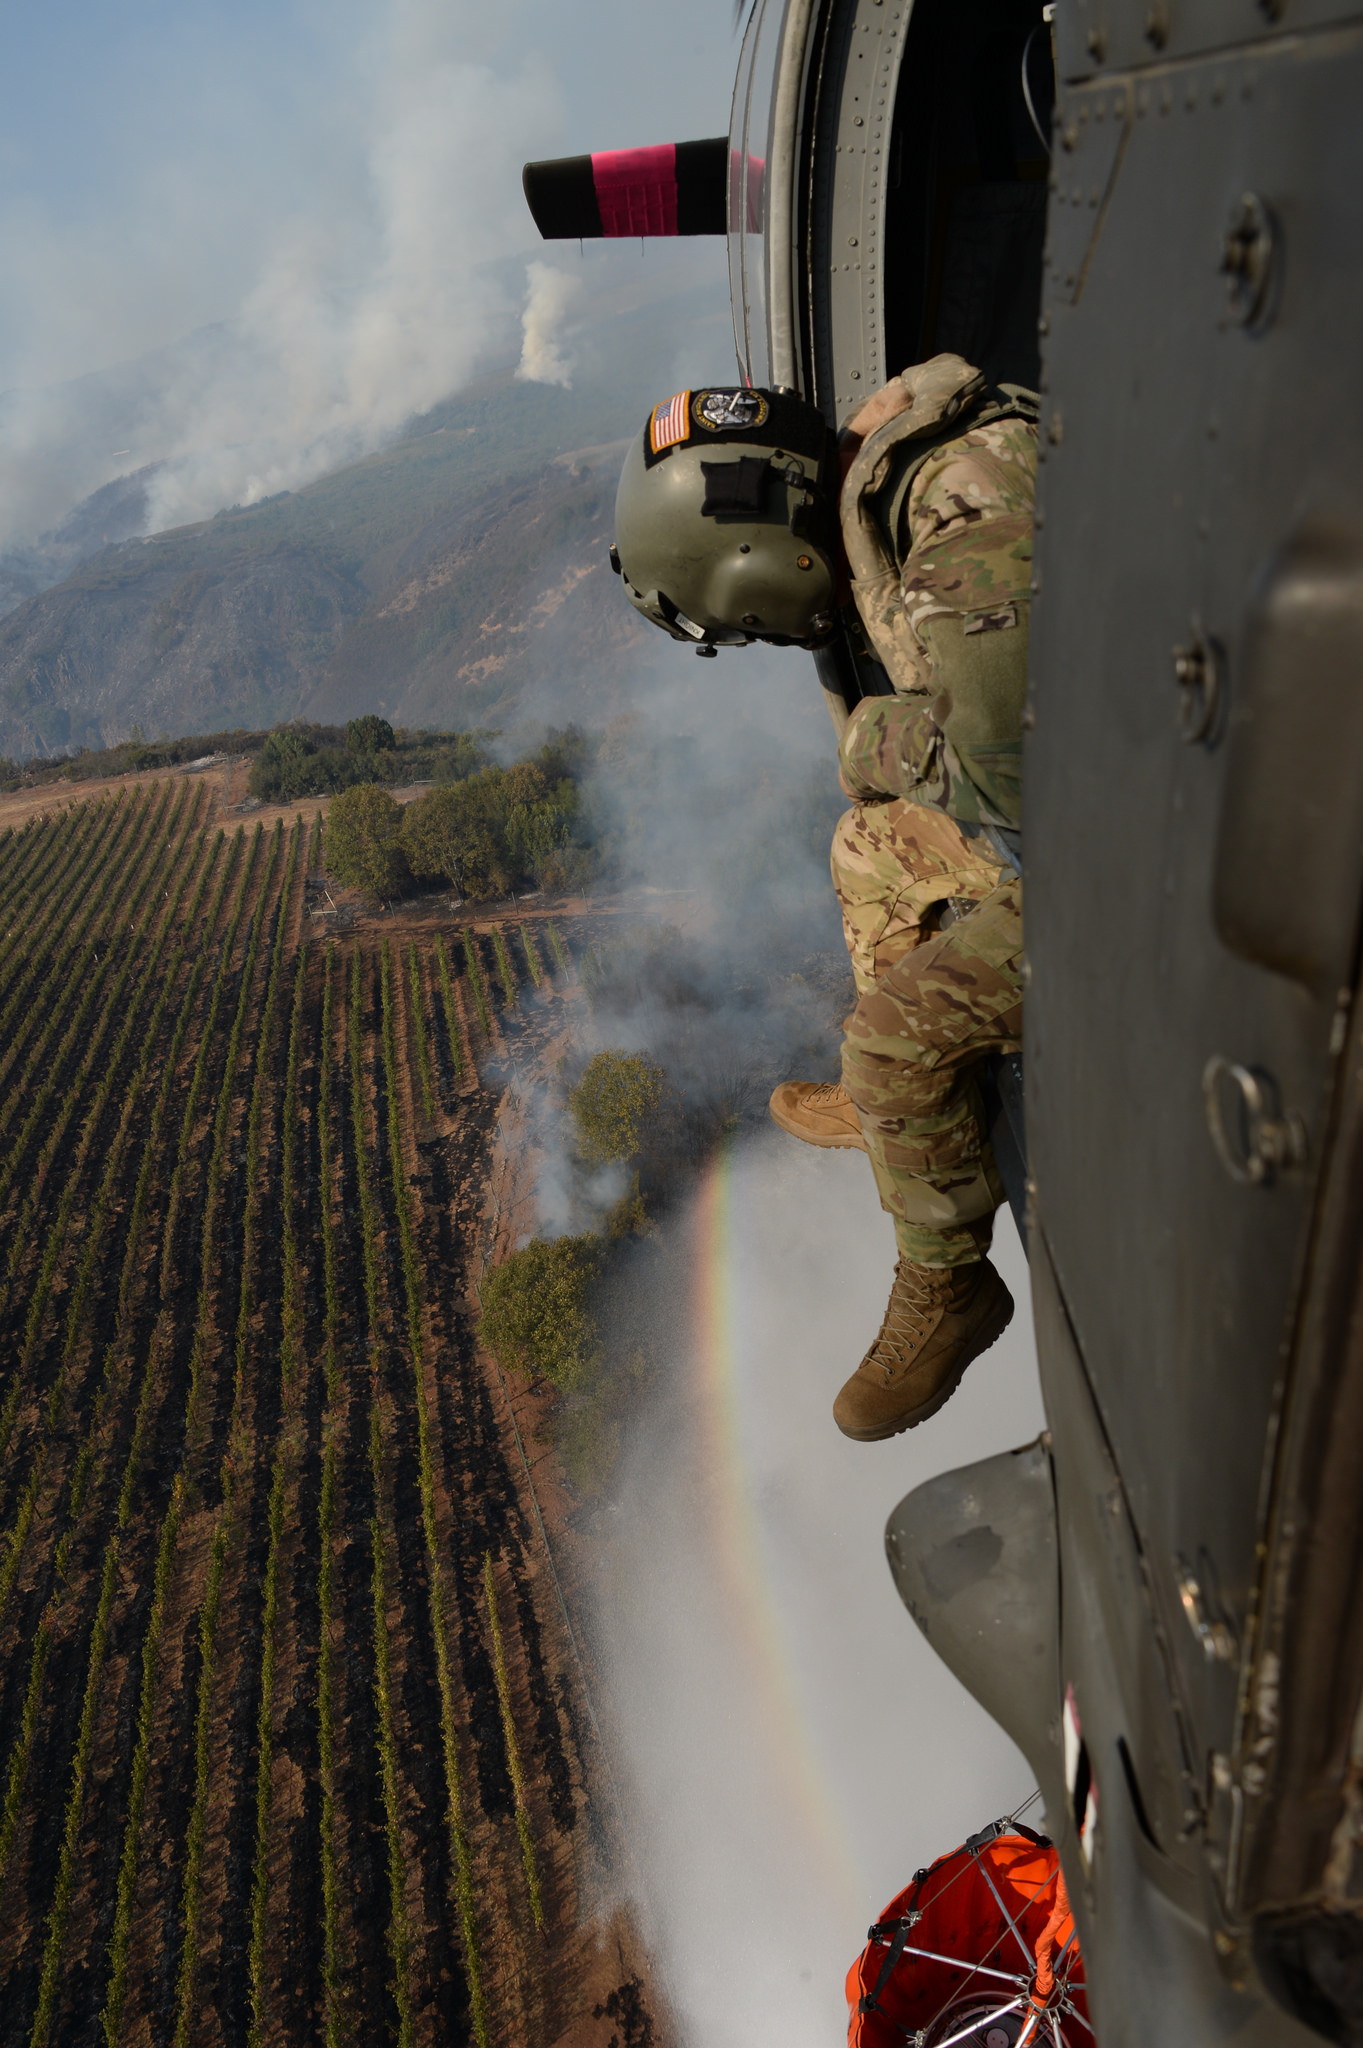 A California Army National Guard Black Hawk conducted water drops on the Northern California Fires in and around Santa Rosa on Oct. 12, 2017. As of Oct. 12, the Cal Guard had dropped more than 60,000 gallons of water on the fires across Northern California. (Master Sgt. David Loeffler/California Air National Guard)